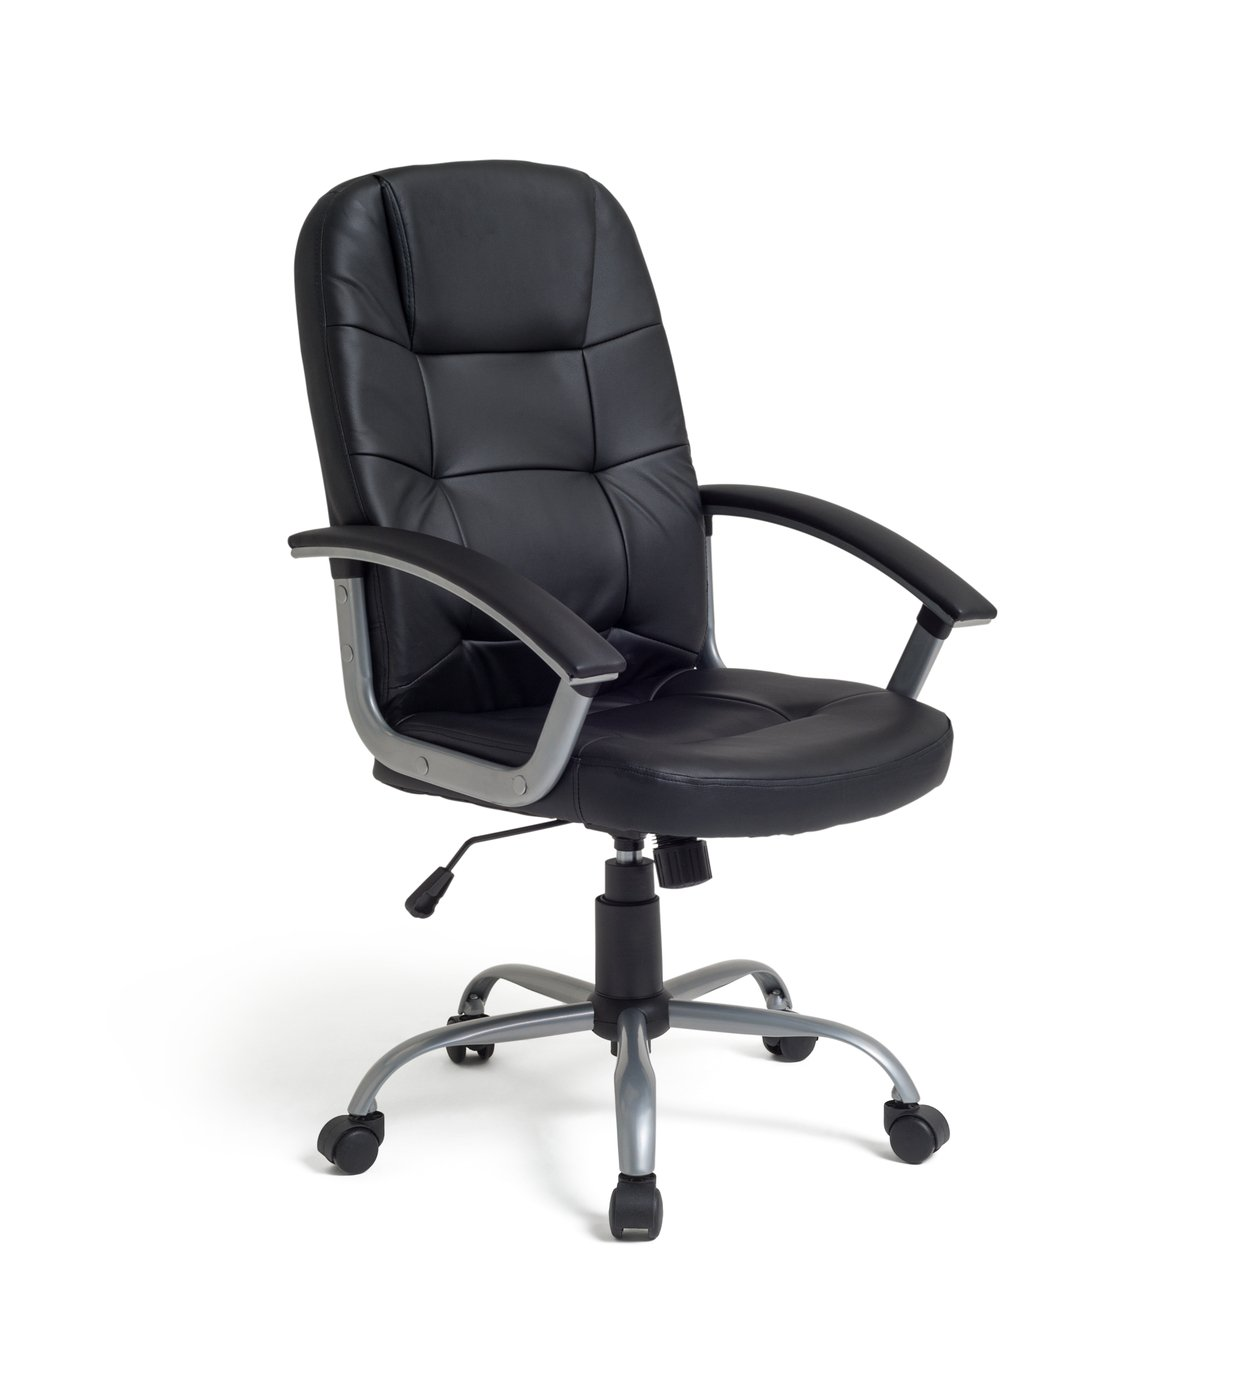 buy walker height adjustable office chair - black at argos.co.uk